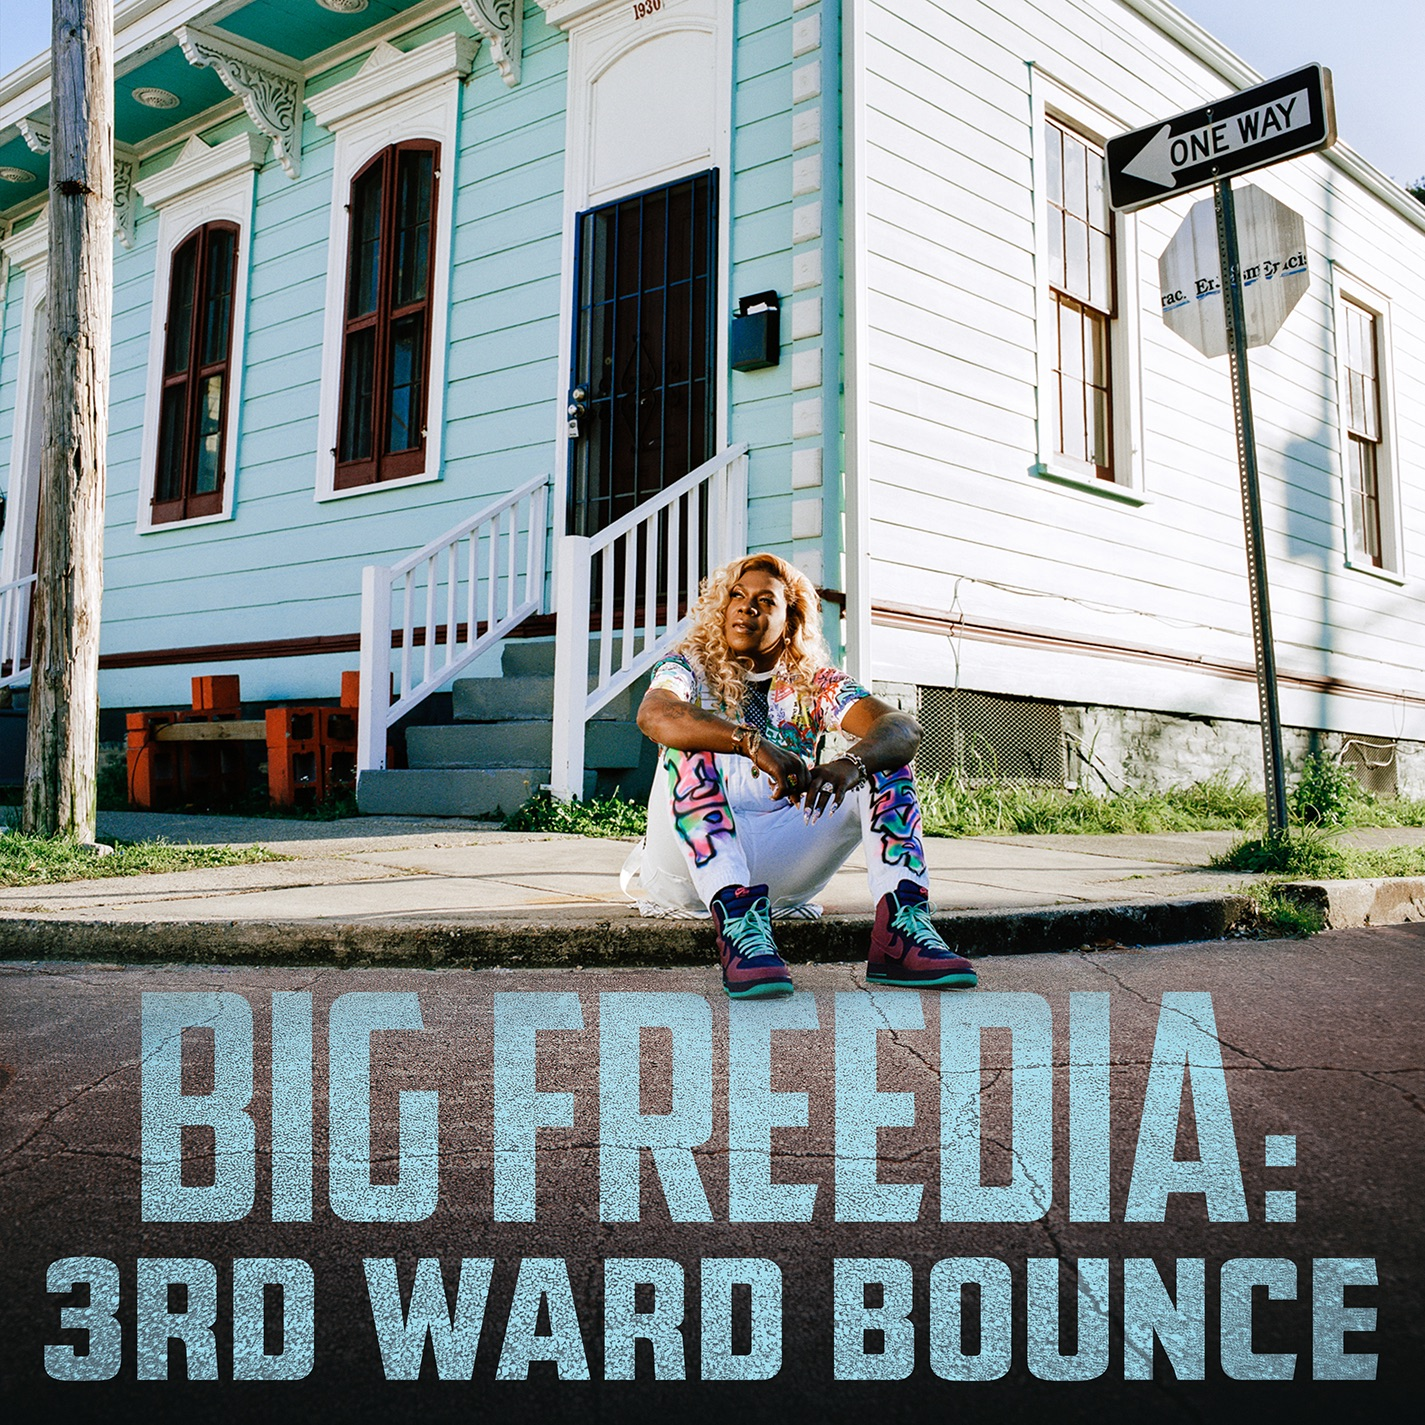 Karaoke (feat. Lizzo) by Big Freedia